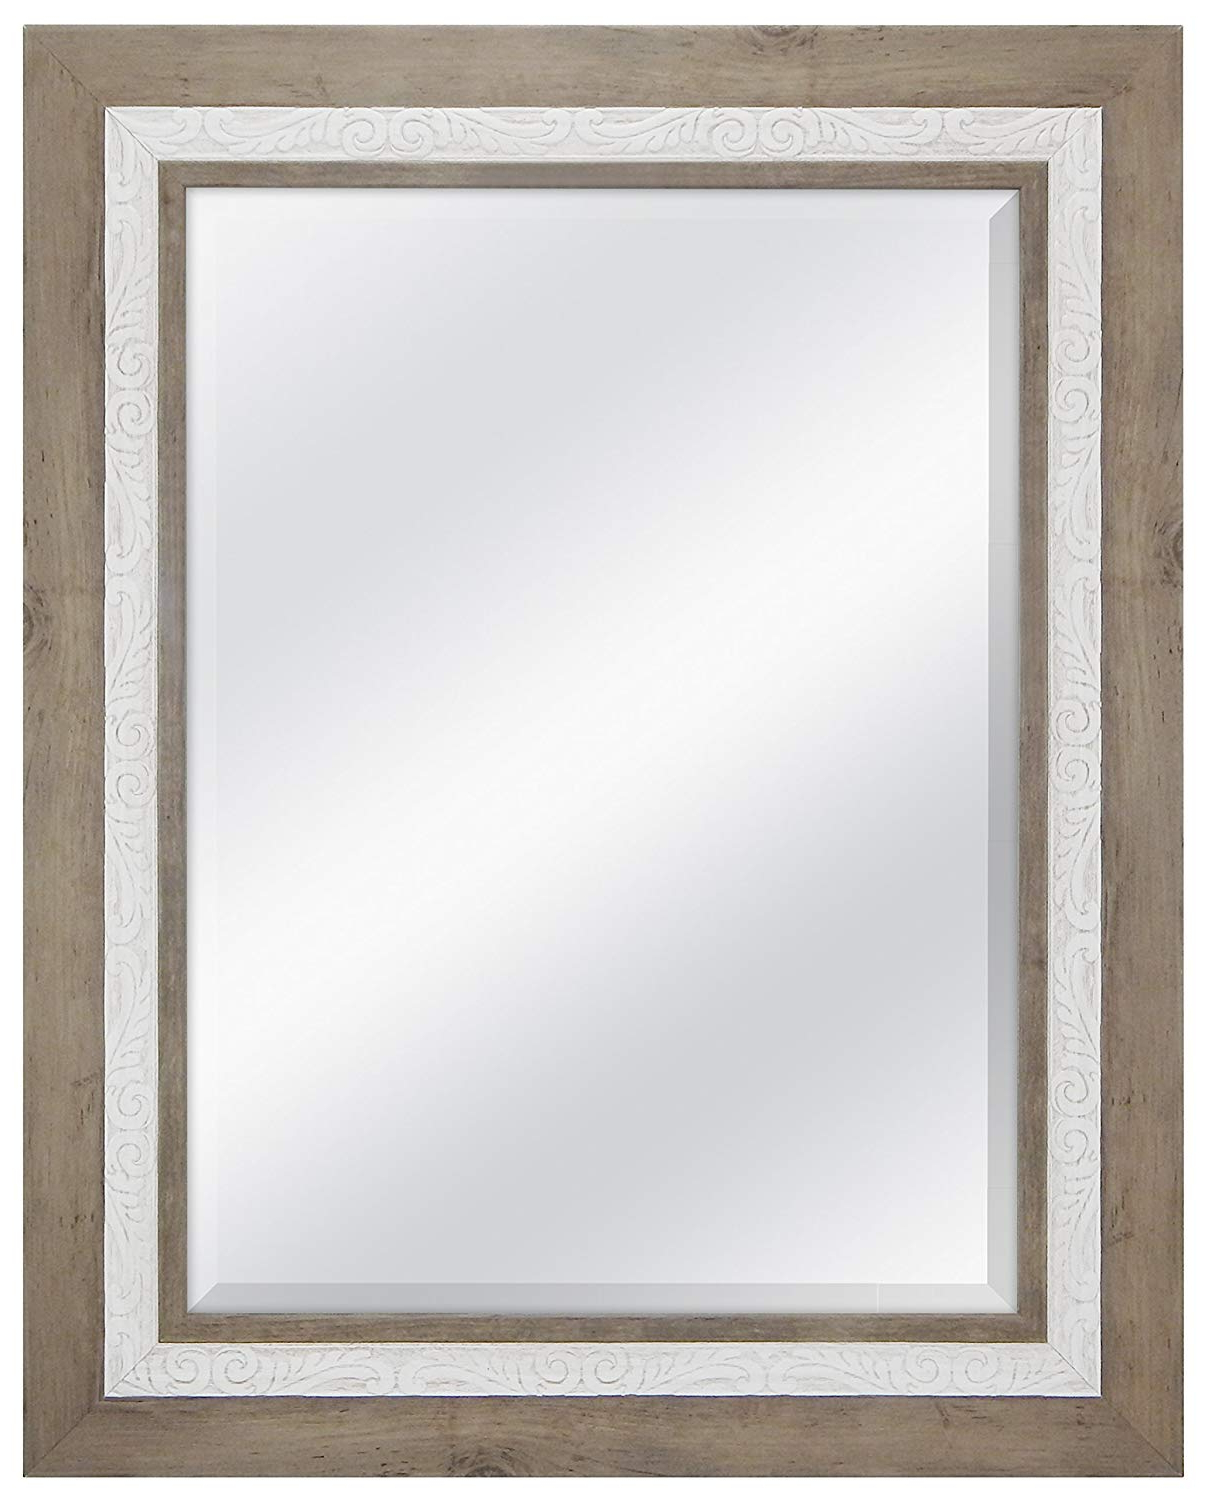 Mcs 18x24 Inch Beveled Wall Mirror Rustic Wood And Embossed Whitewash Finish 24.5 X (View 10 of 20)